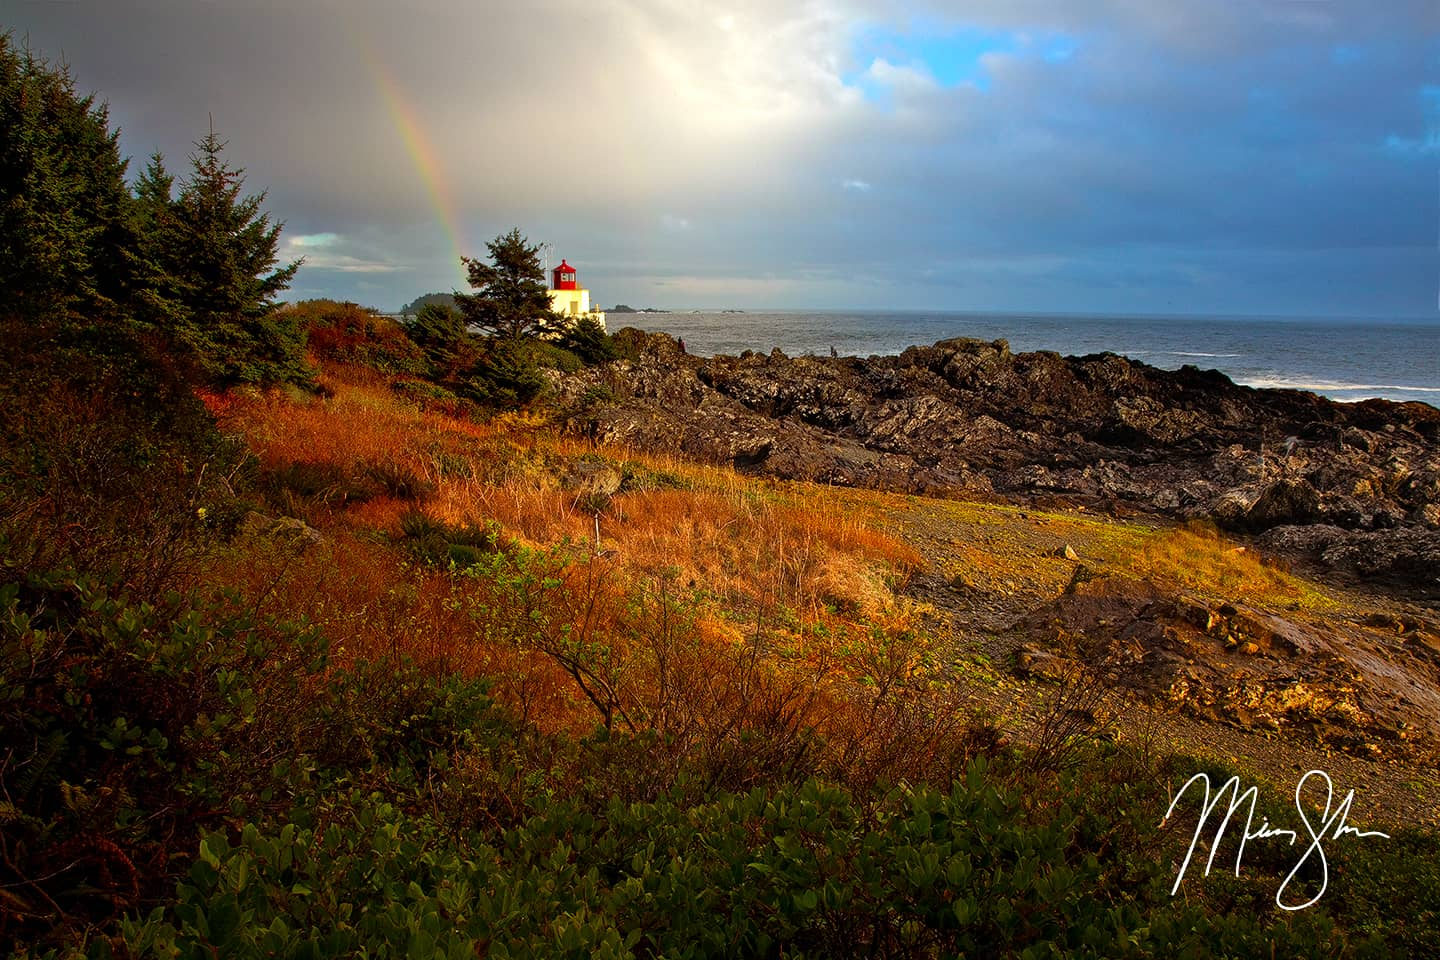 Ucluelet Lighthouse Rainbow - Ucluelet Lighthouse, Ucluelet, Vancouver Island, British Columbia, Canada